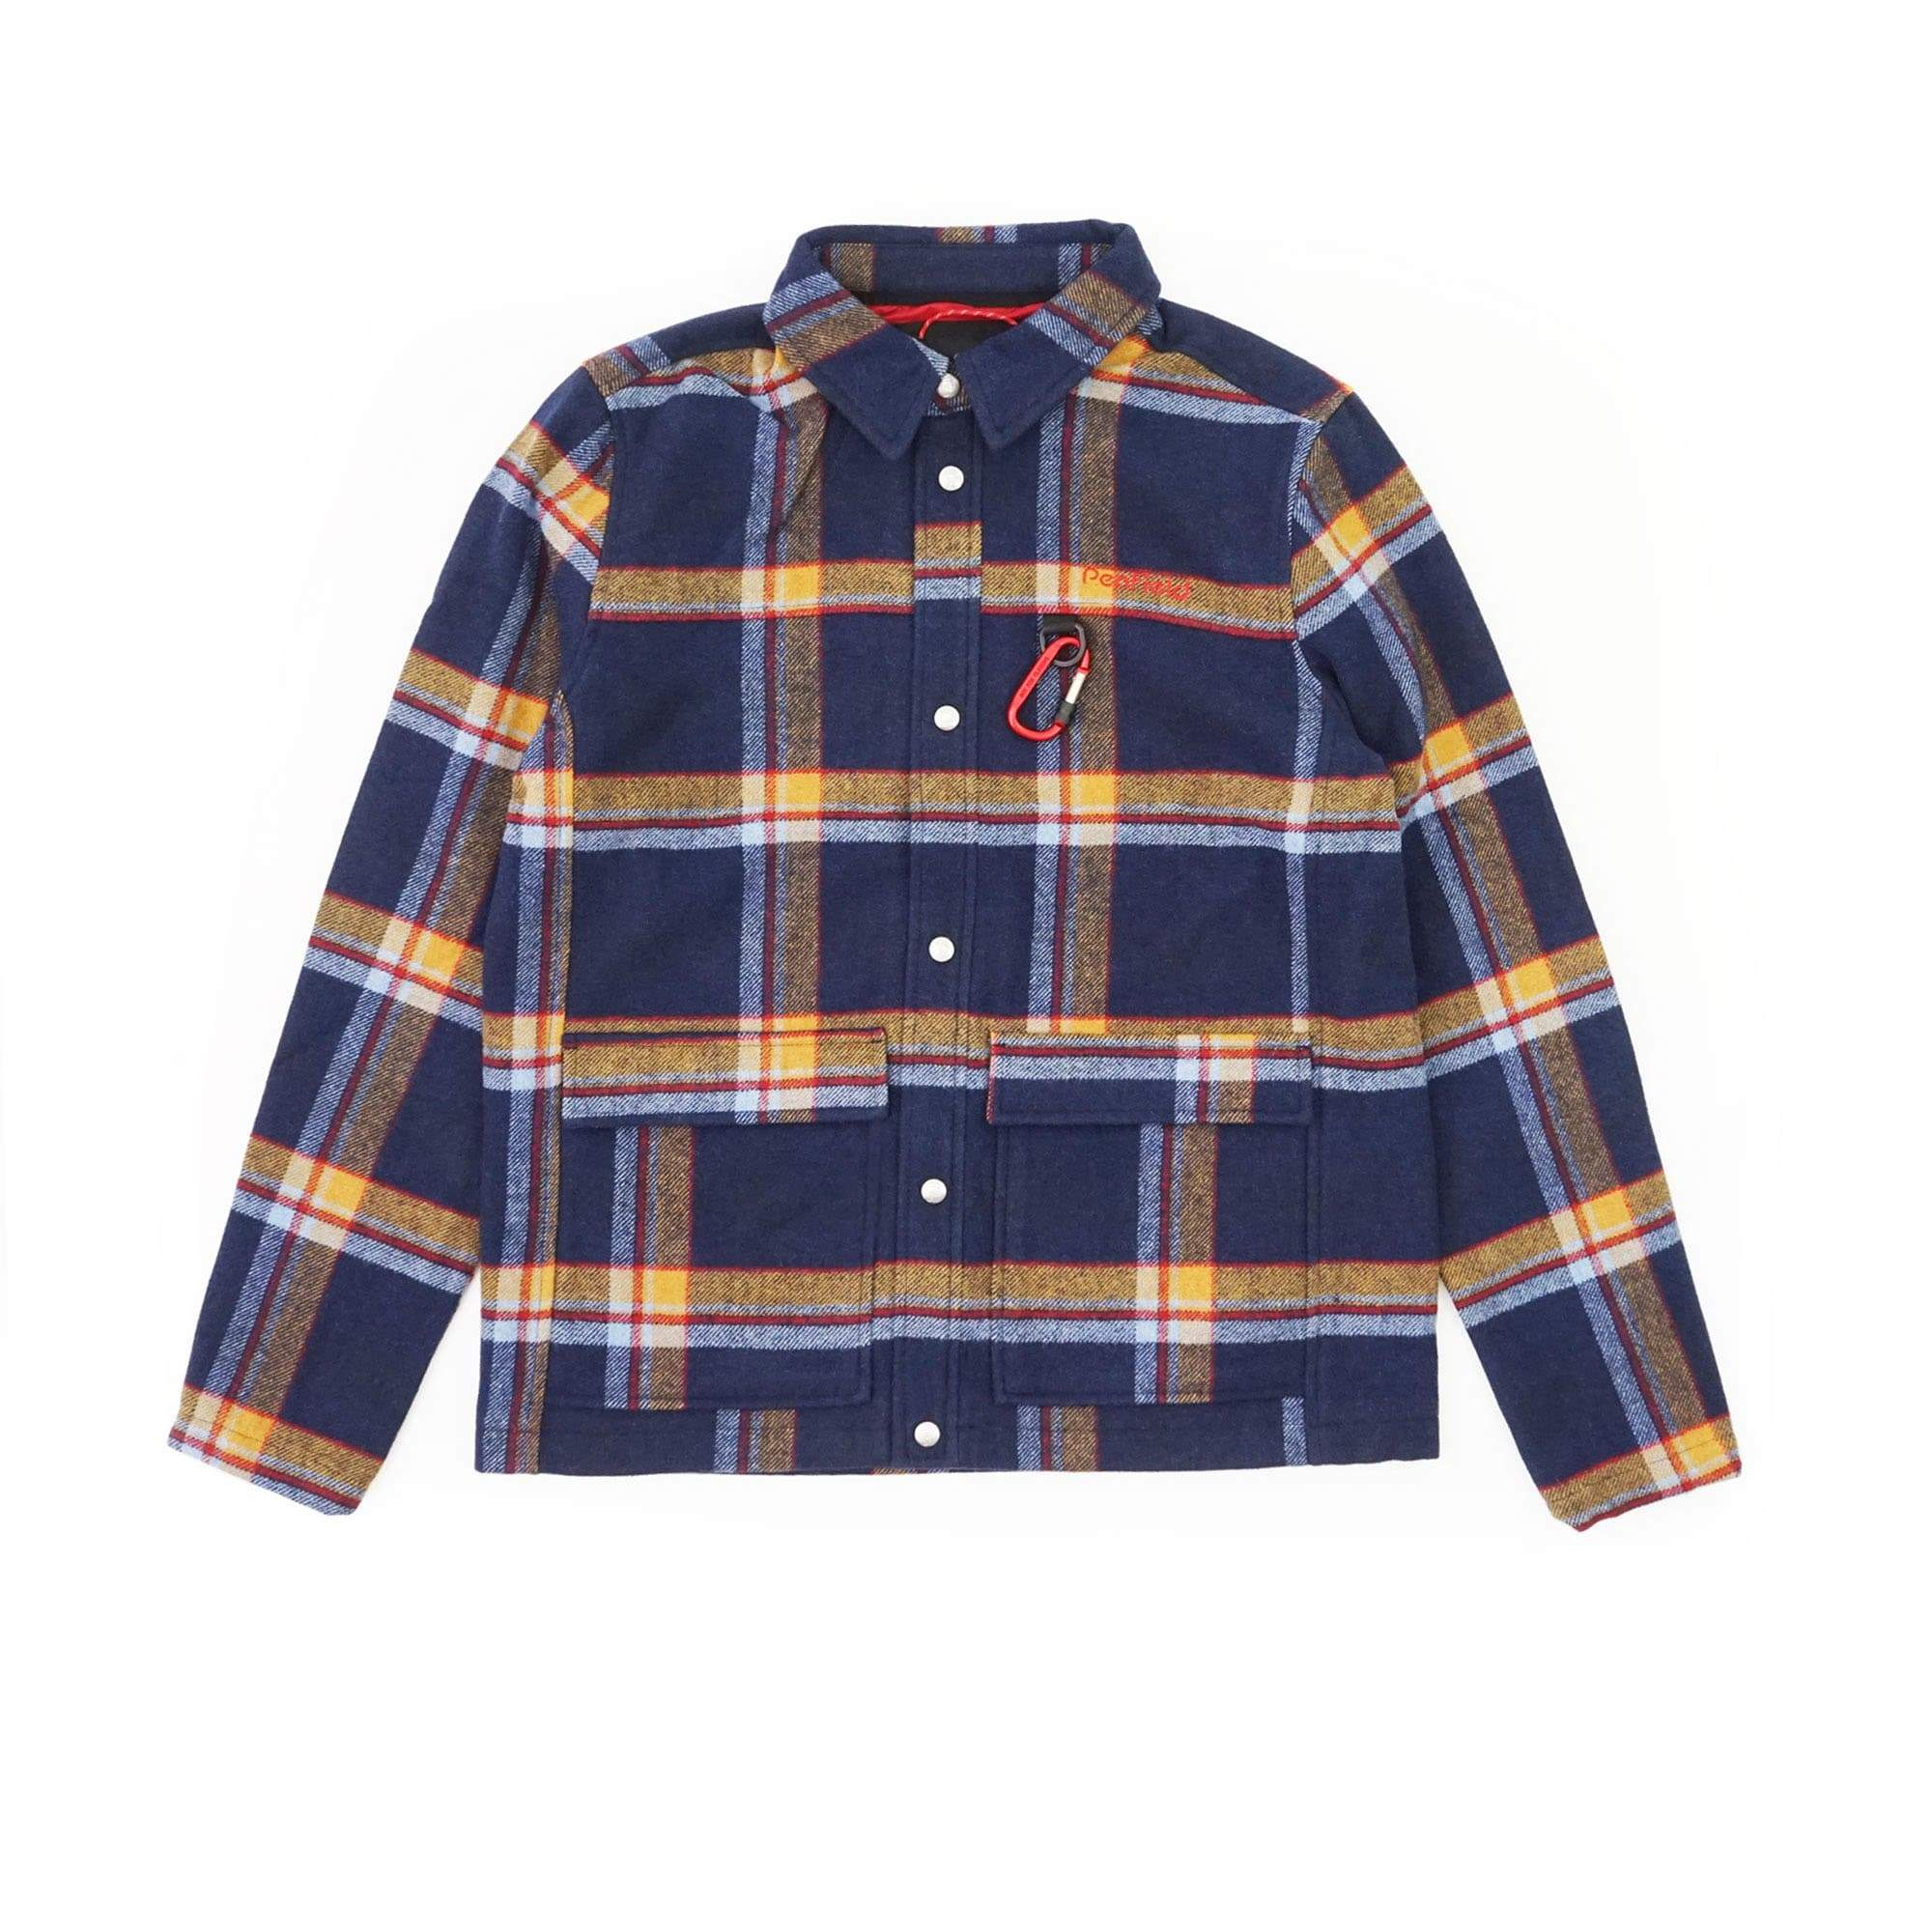 Penfield Jacken M BILLTON Check Jacket